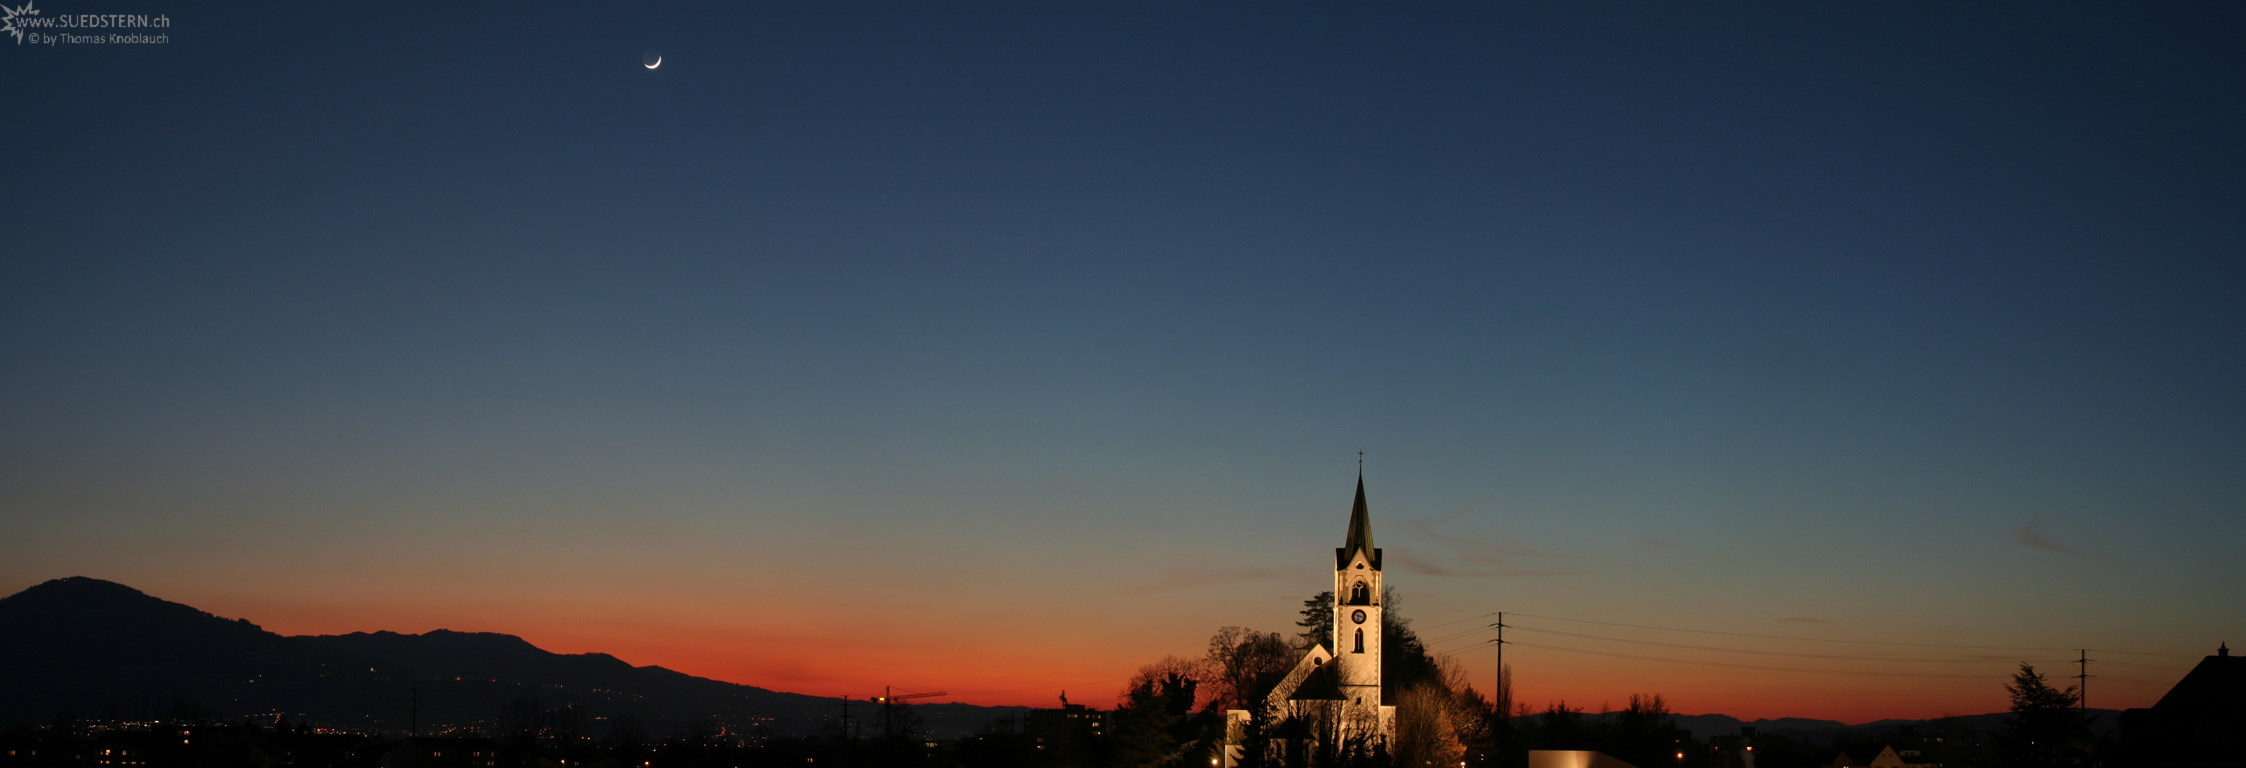 2008-02-09 - Panoramic Sundown with Moon and Church, Jona, Switzerland